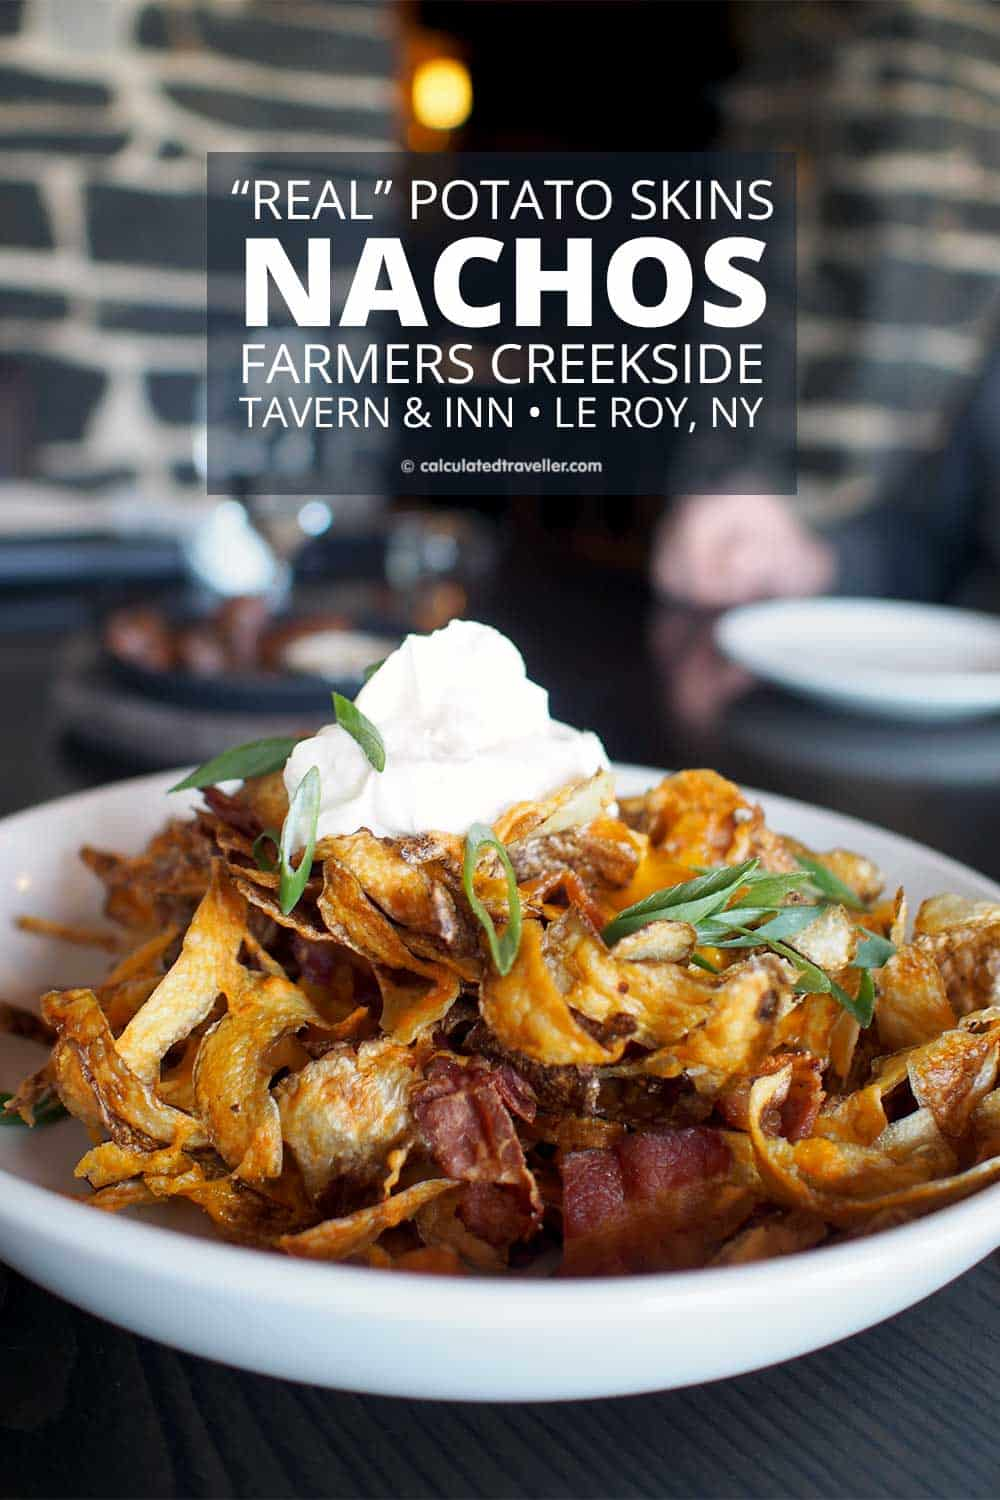 Farmers Creekside Tavern and Inn Le Roy New York. Real Potato Nachos. #restaurant #tavern #inn #potato #nachos #food #travel #NewYork #LeRoy